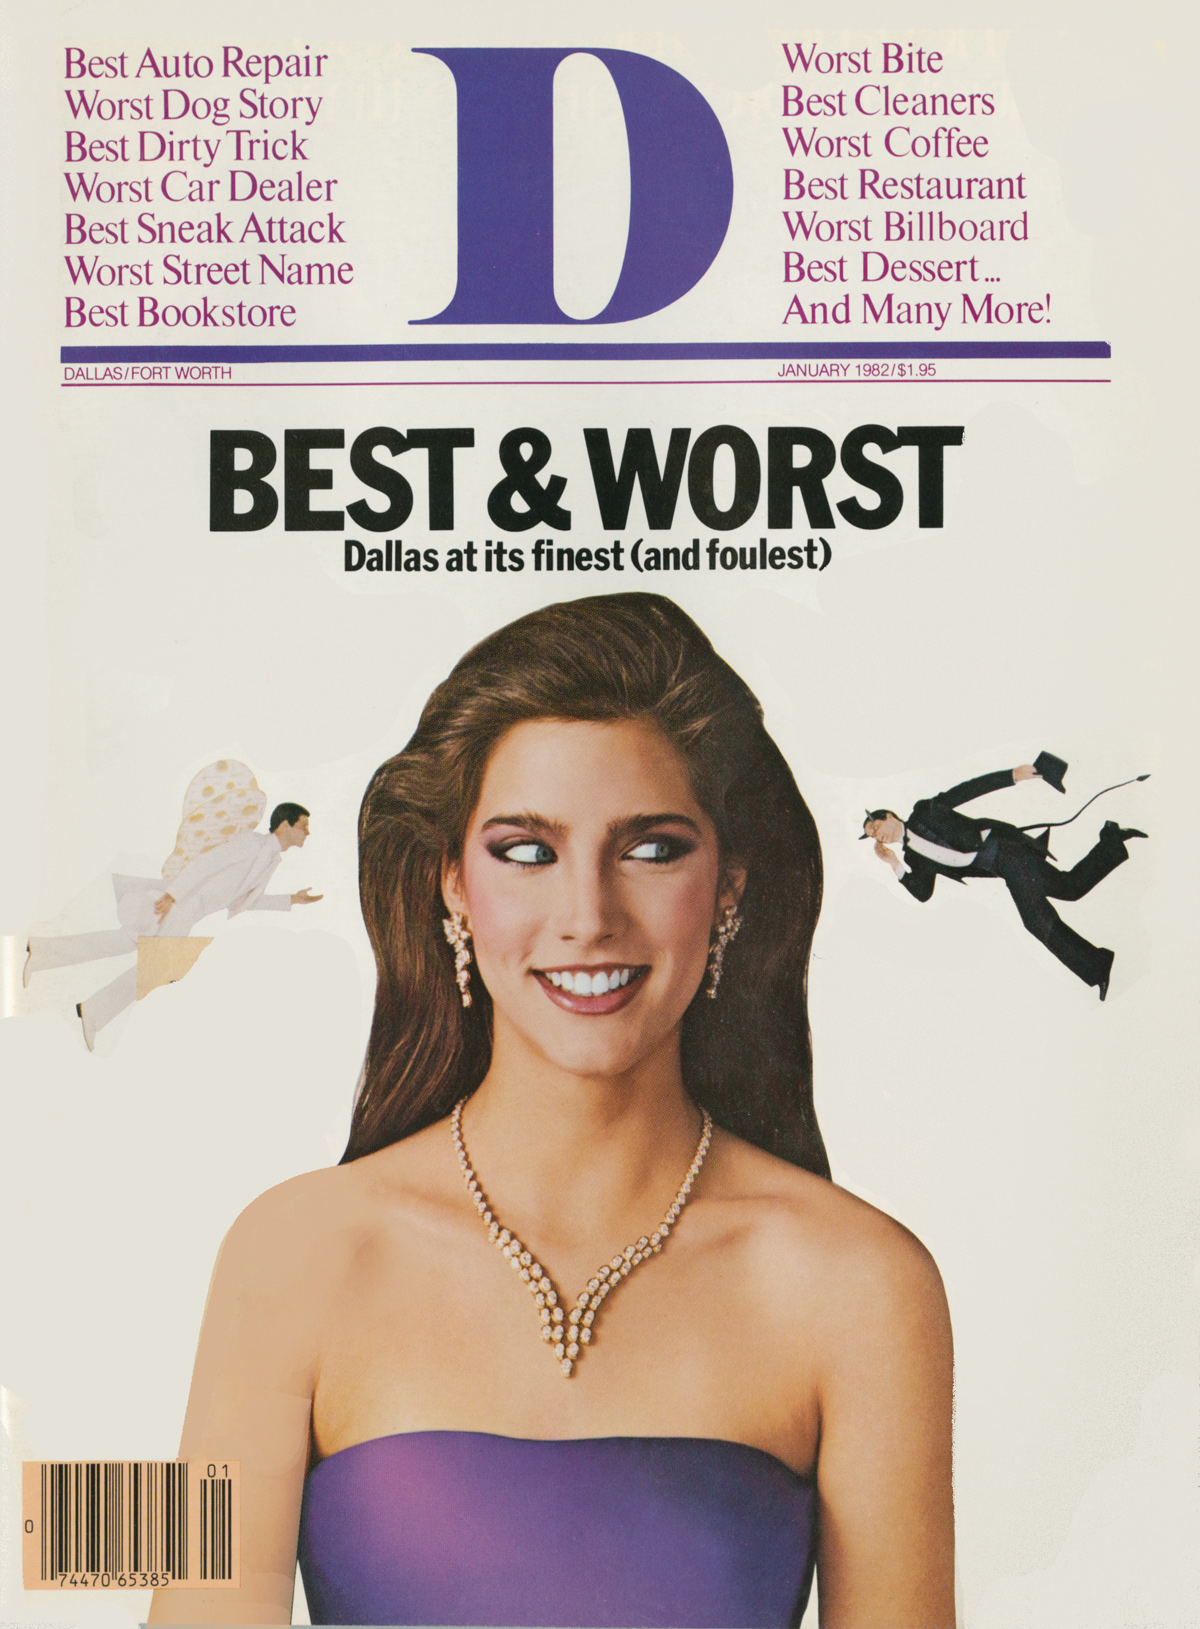 January 1982 cover